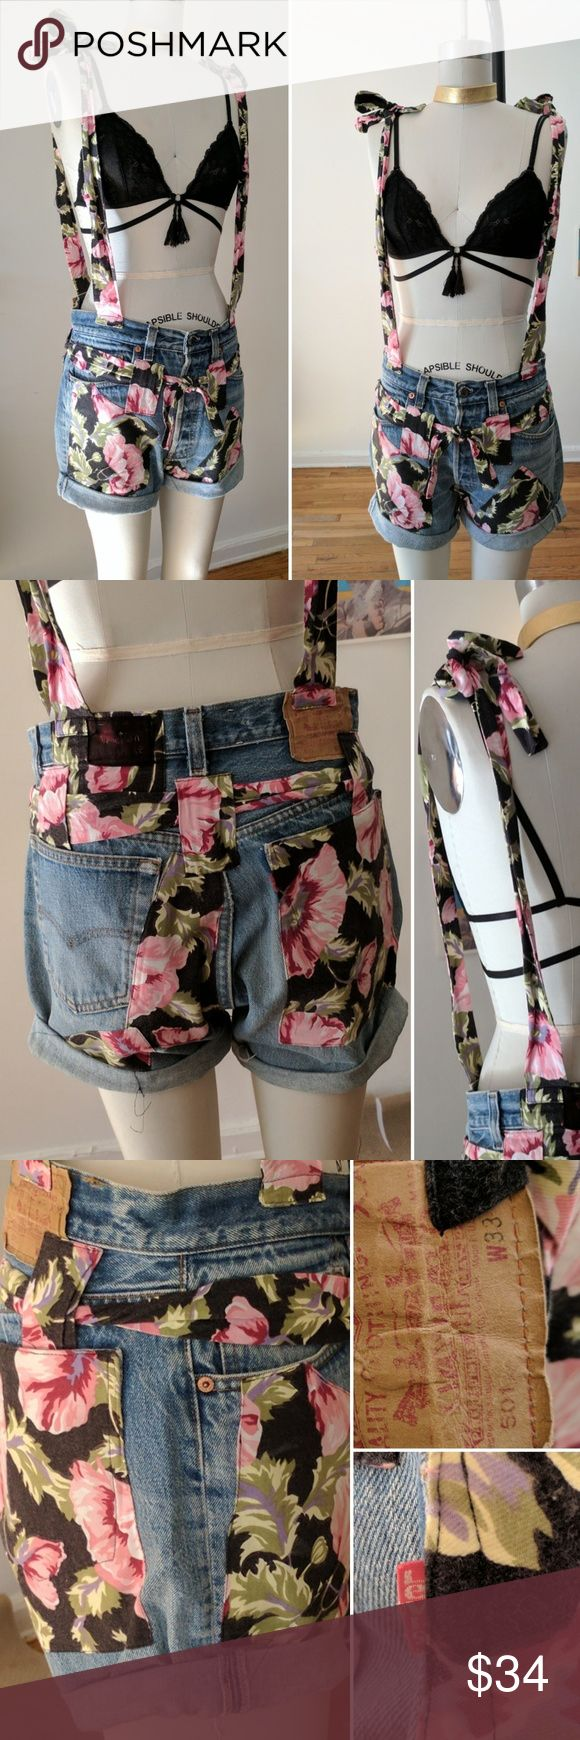 "1990s VINTAGE LEVI'S Cut Off JEAN SHORTS Overalls One of a kind, vintage LEVI Western Wear cut off Jean SHORTS with 90s FLORAL pattern PATCHES and ""suspender"" overalls!! Sooo 90s ALA Blossom & Full House. These are legit VINTAGE! -Super cute perfect with a bra for a FESTIVAL! Labeled 33"" waist but I believe they were men's pants altered to be women's? They fit more like a 29-30"". I'm a 28"" waist and I wore them baggy and low. The form has a 26"" waist. -Very good condition with normal signs…"